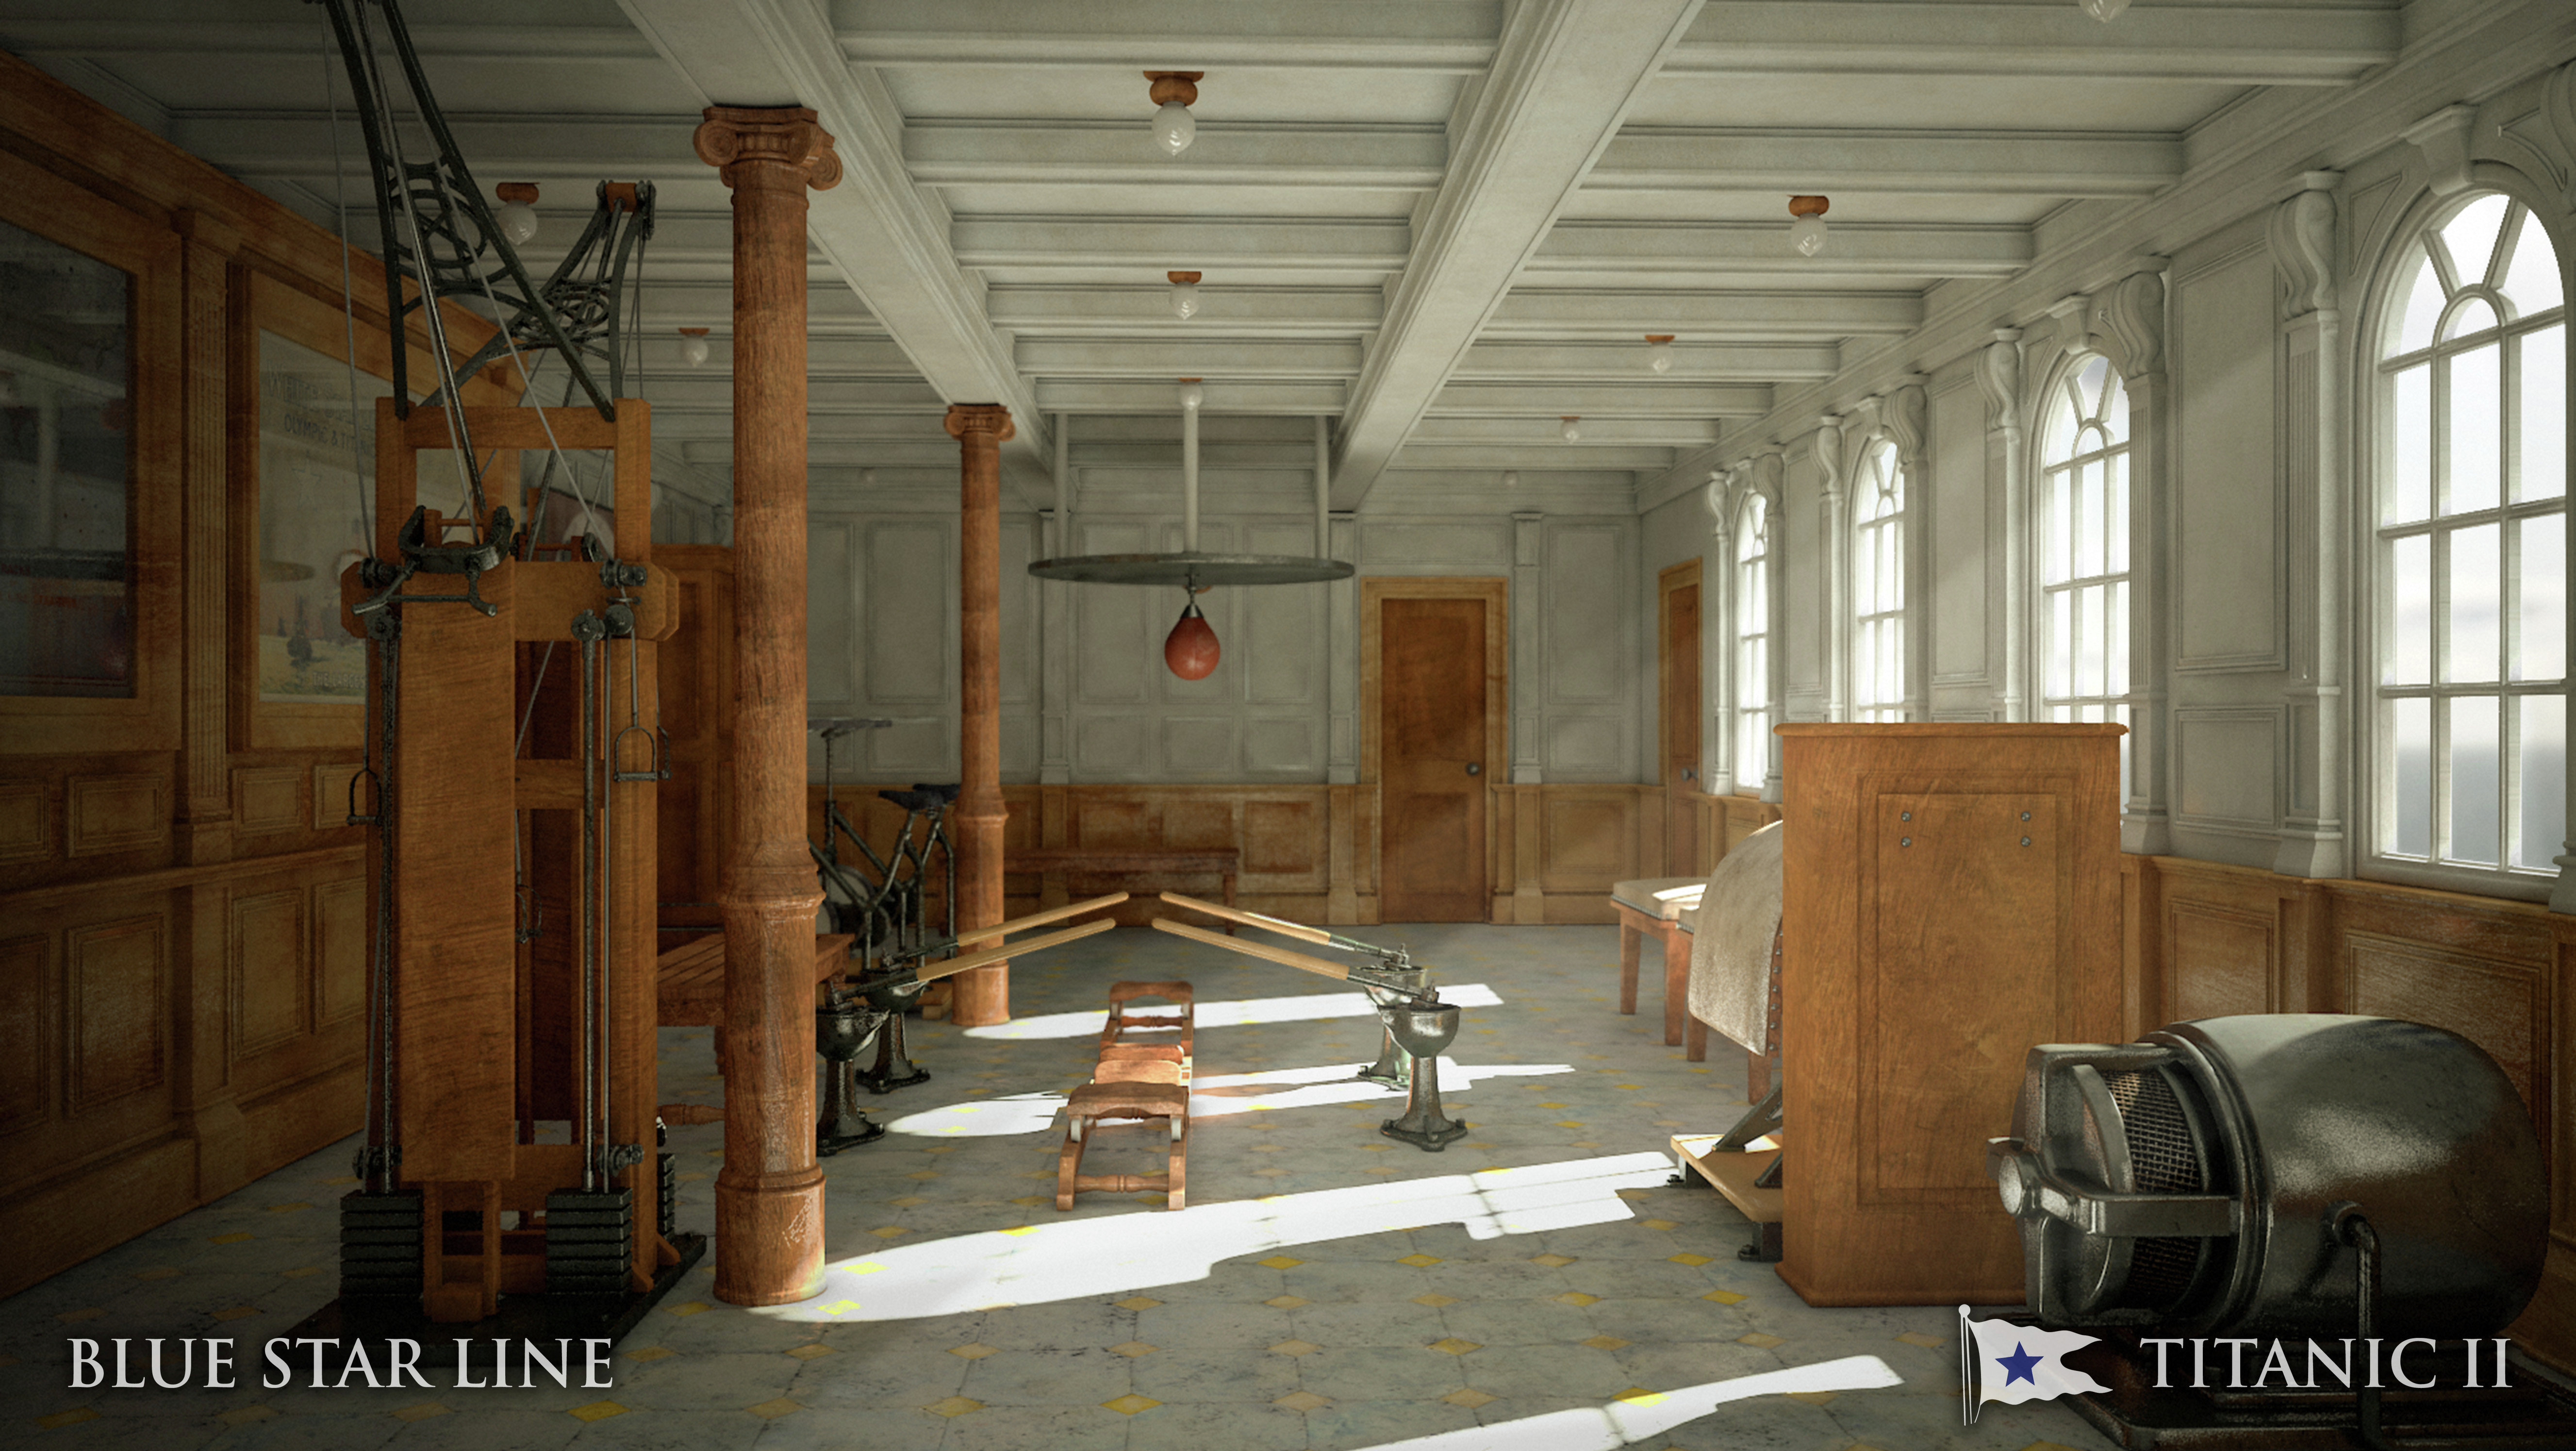 In this rendering provided by Blue Star Line, the gymnasium on the Titanic II is shown. The ship, which Australian billionaire Clive Palmer is planning to build in China, is scheduled to sail in 2016